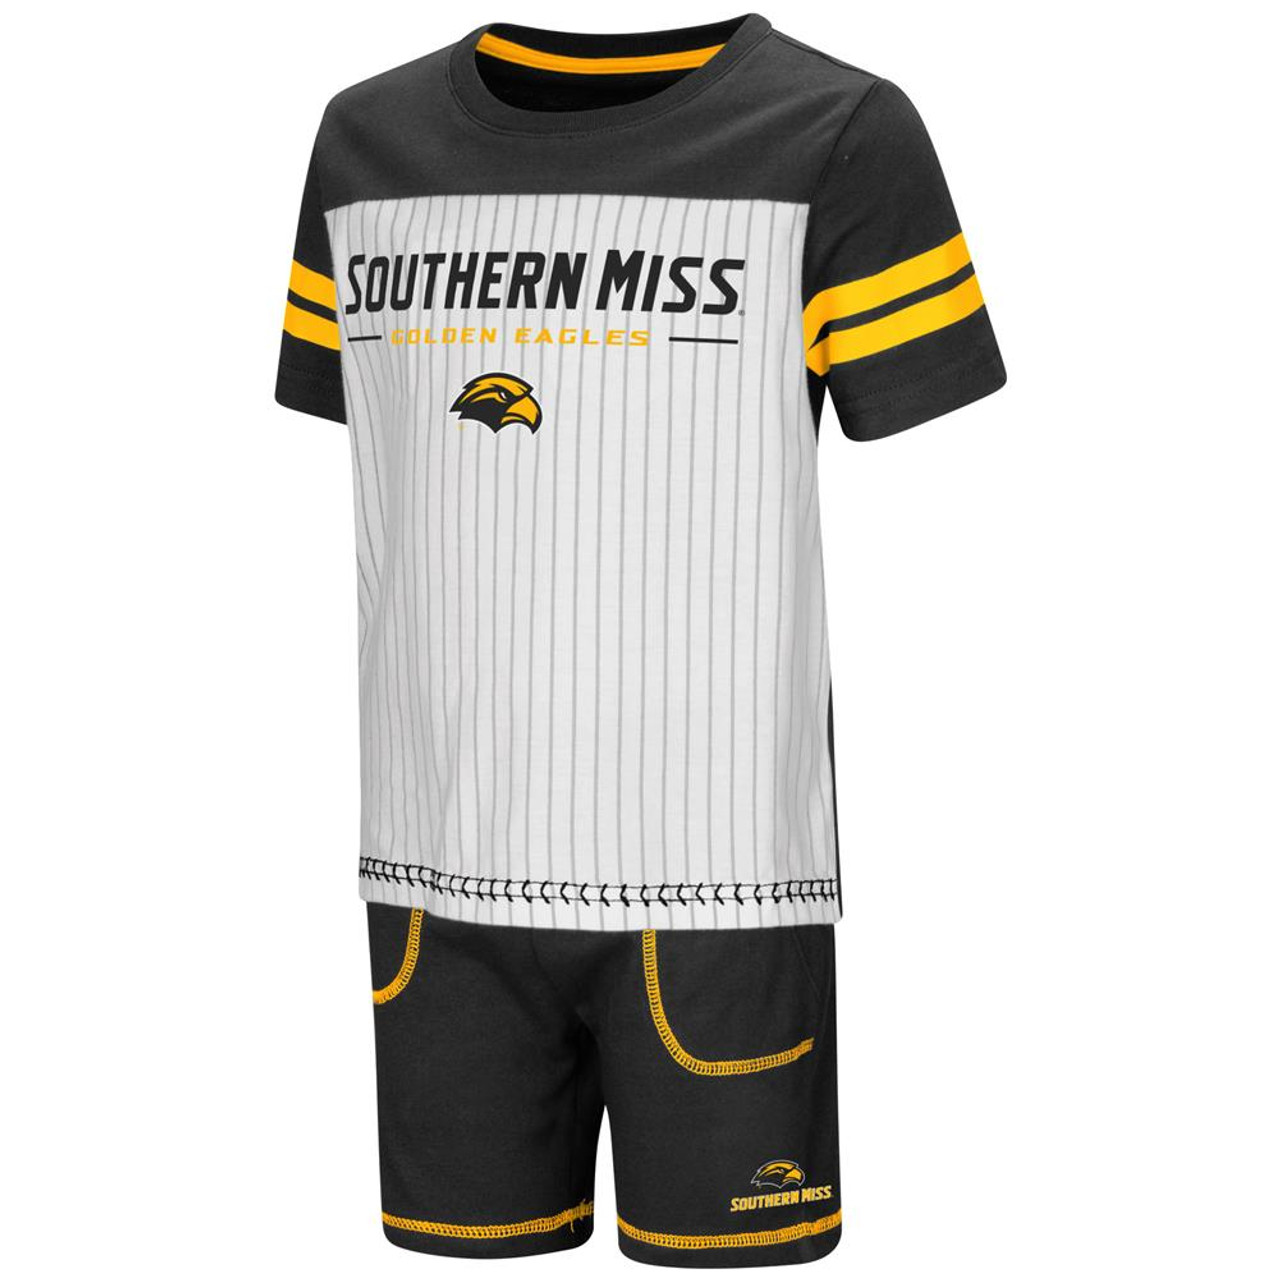 Southern Miss USM Toddler Boy's Shorts and Baseball T-Shirt Set